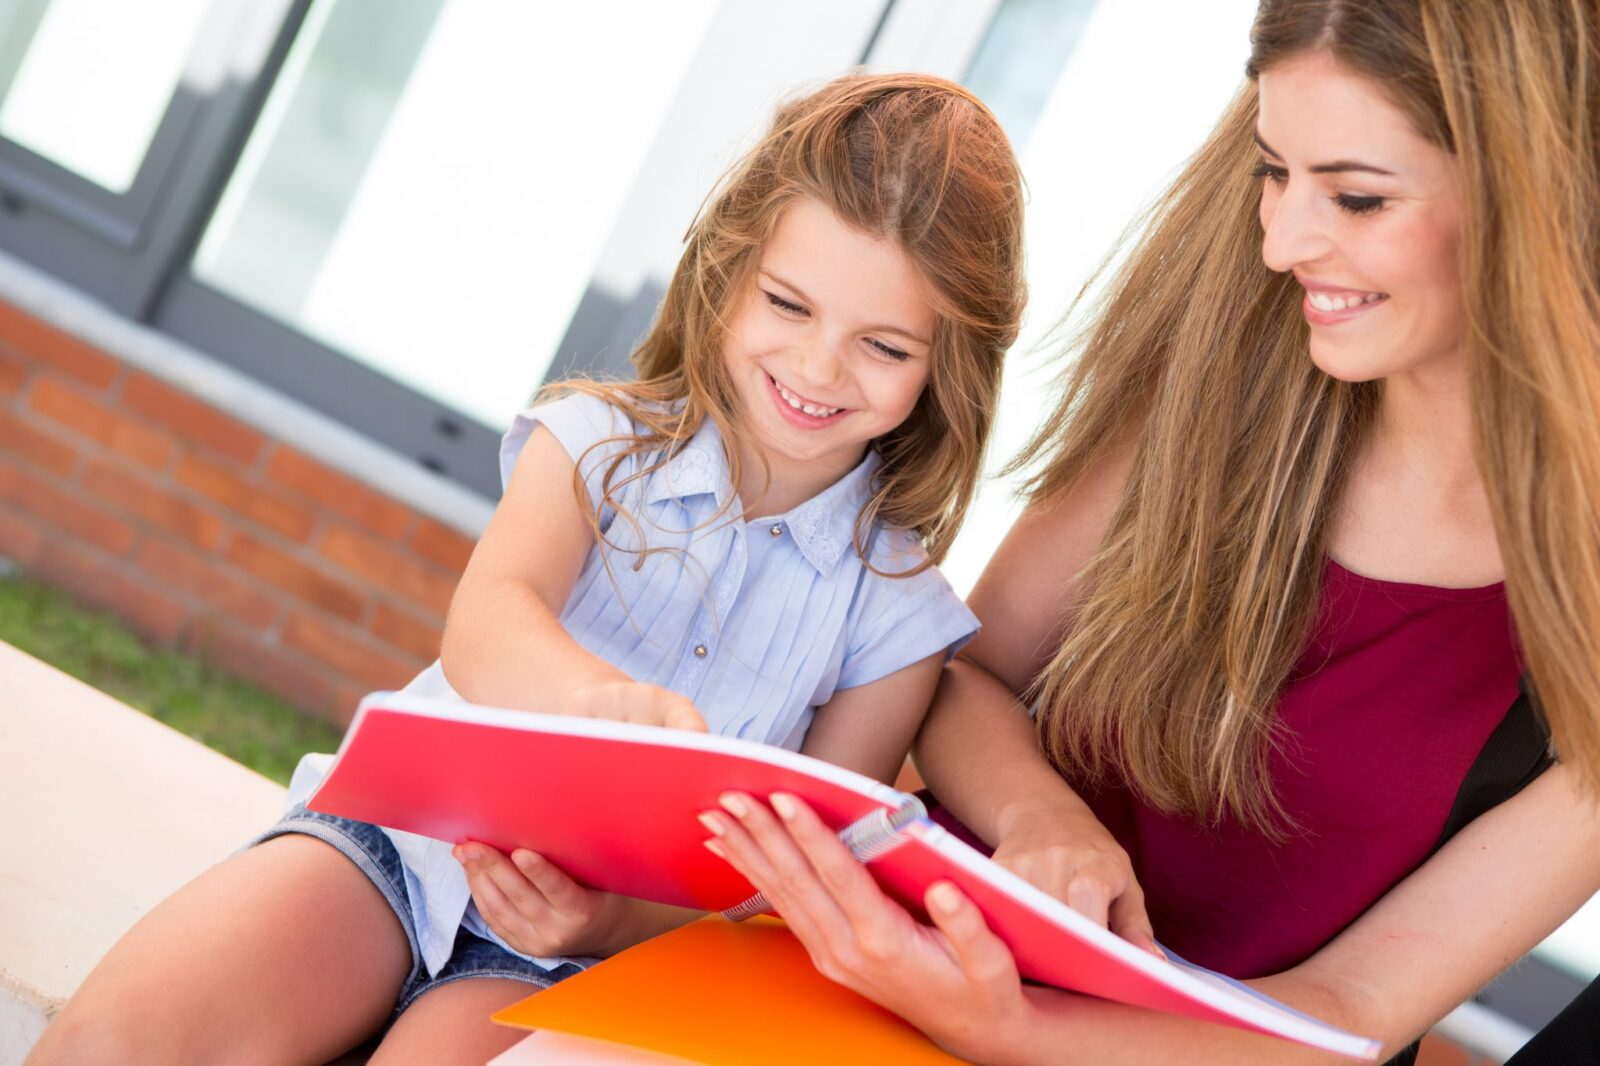 parent communication with positive notes home as classroom management strategy